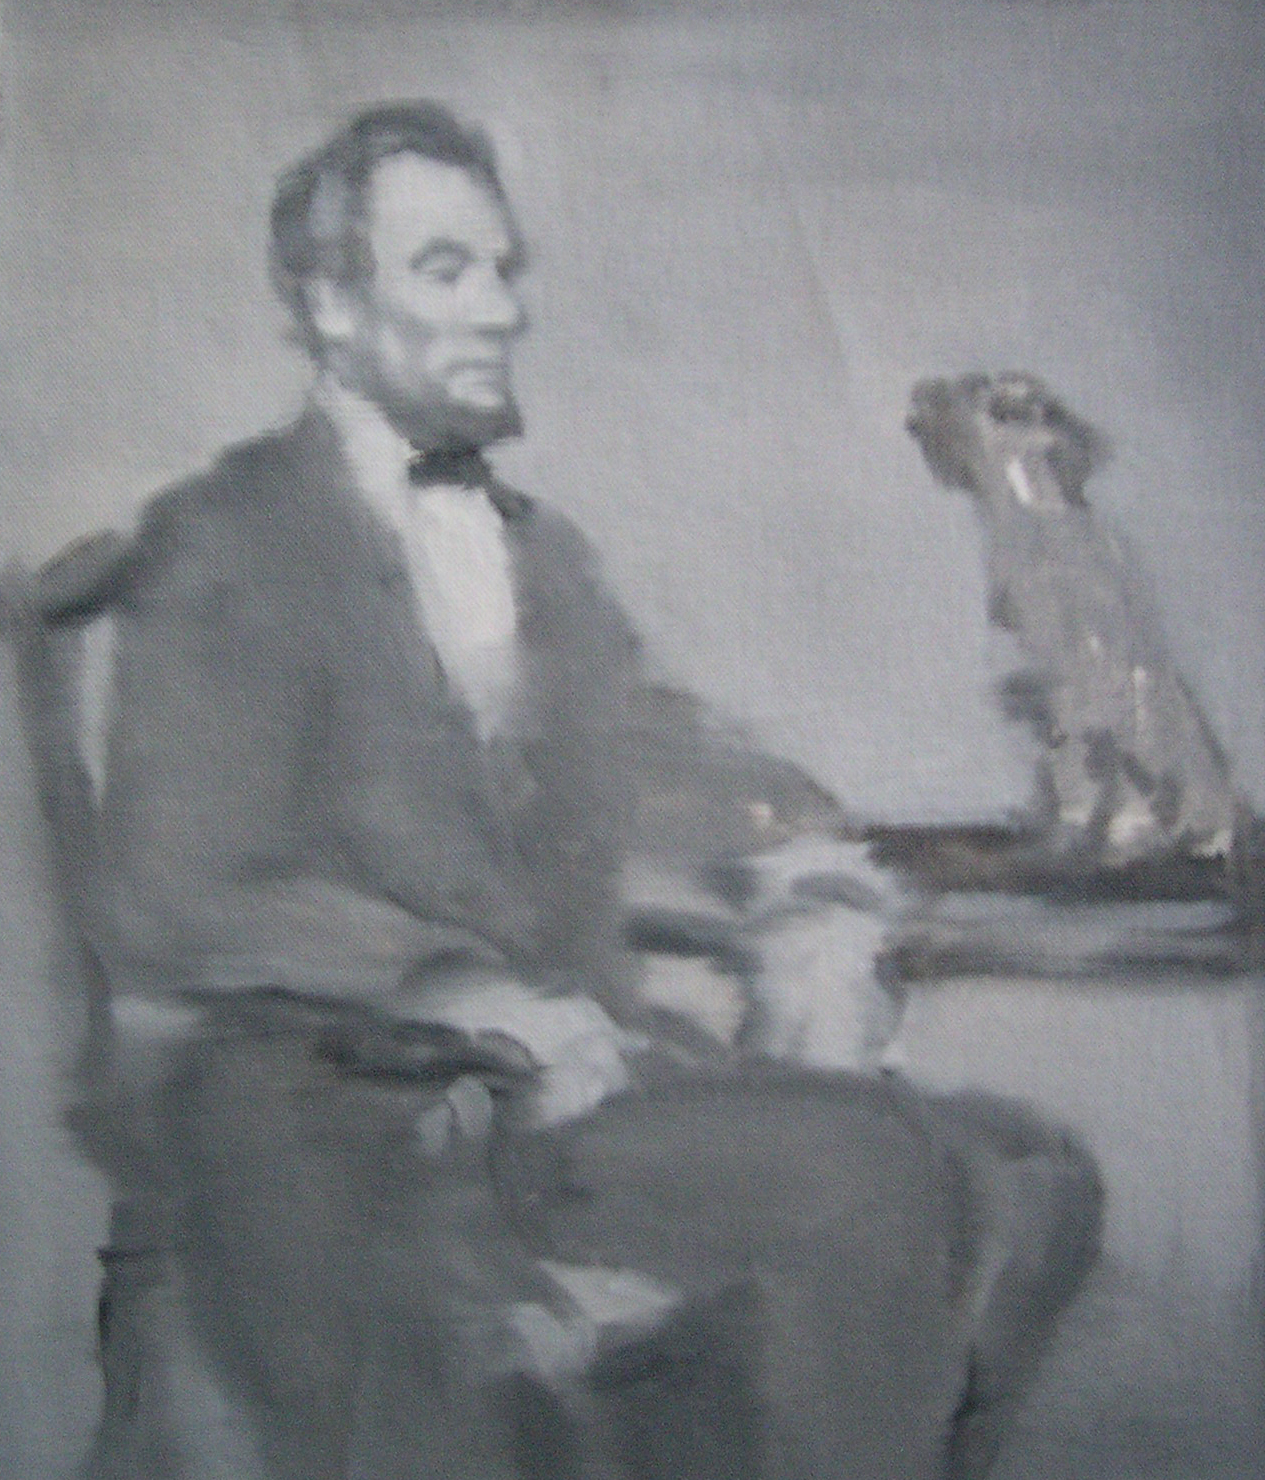 Abraham Lincoln Seeking Advice from a Small Talking Dog